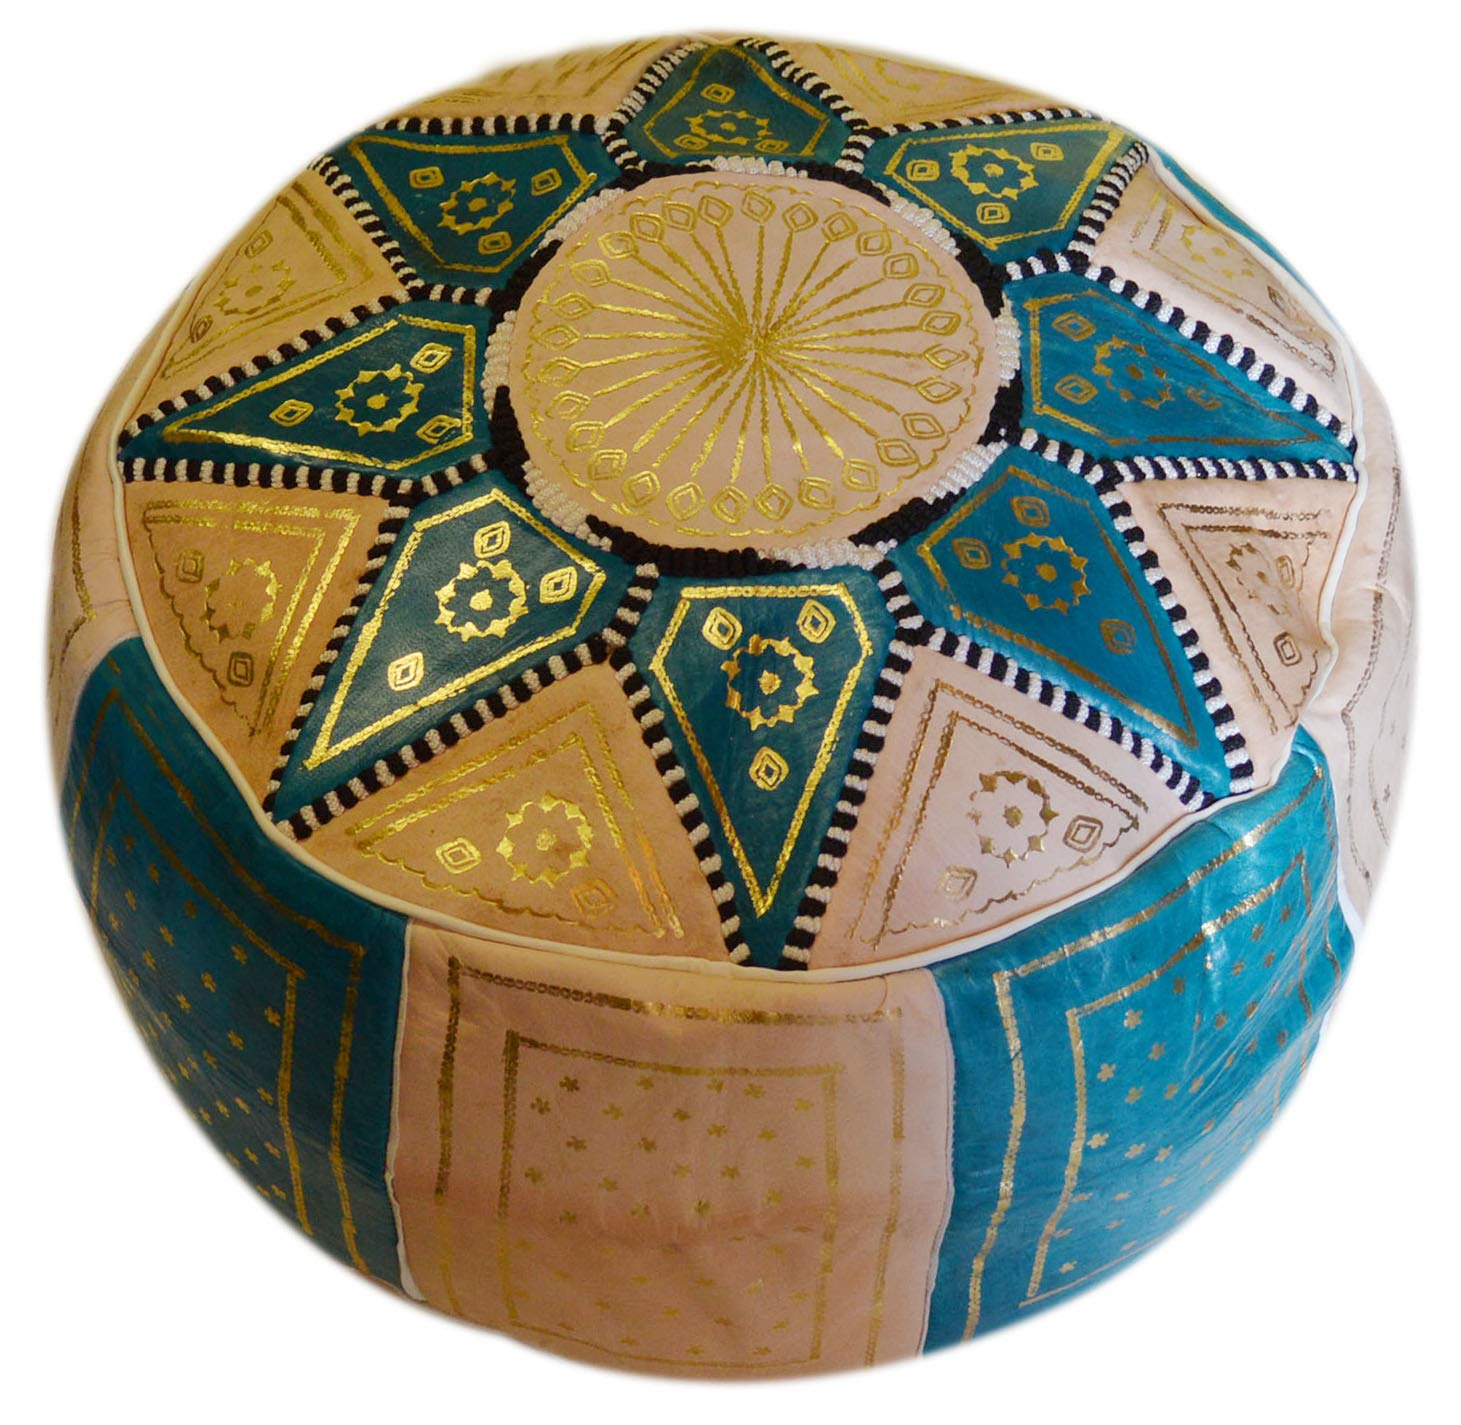 Moroccan Pouf Handmade Leather Luxury Ottomans Footstools Cover High Quality Satisfaction Guaranteed Treasures Of Morocco Poof beige turquoise